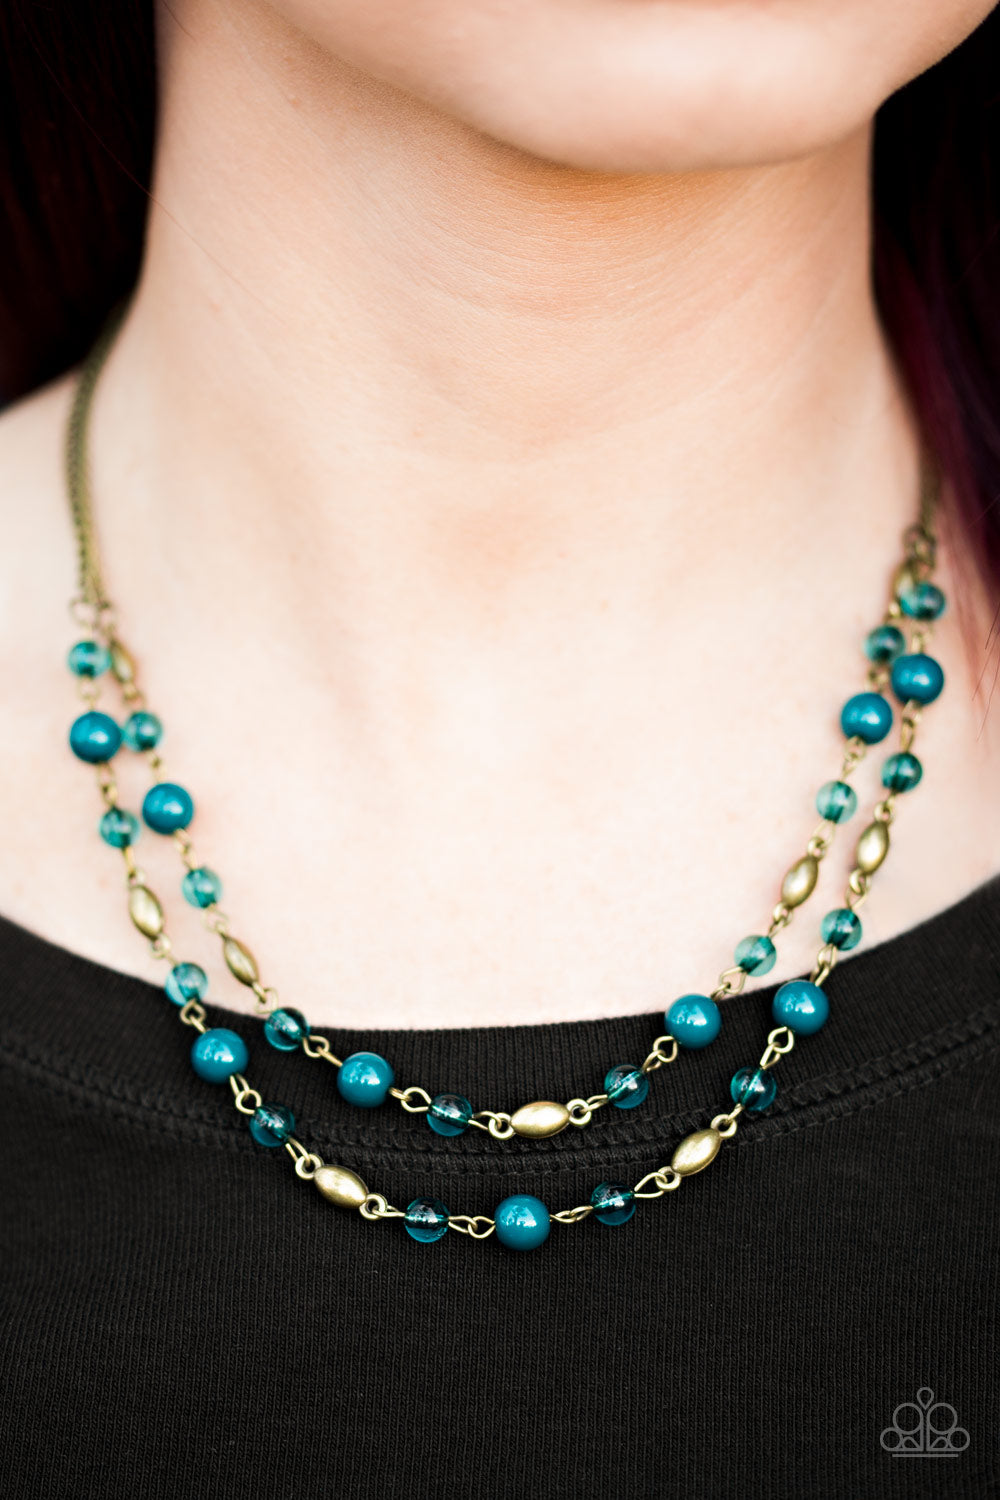 Rustic blue beads trickle along two strands of shimmery brass chain. Infused with shiny brass beading, blue crystal like beads trickle between the colorful accents, creating whimsical layers below the collar. Features an adjustable clasp closure.   Sold as one individual necklace. Includes one pair of matching earrings.   Always nickel and lead free.